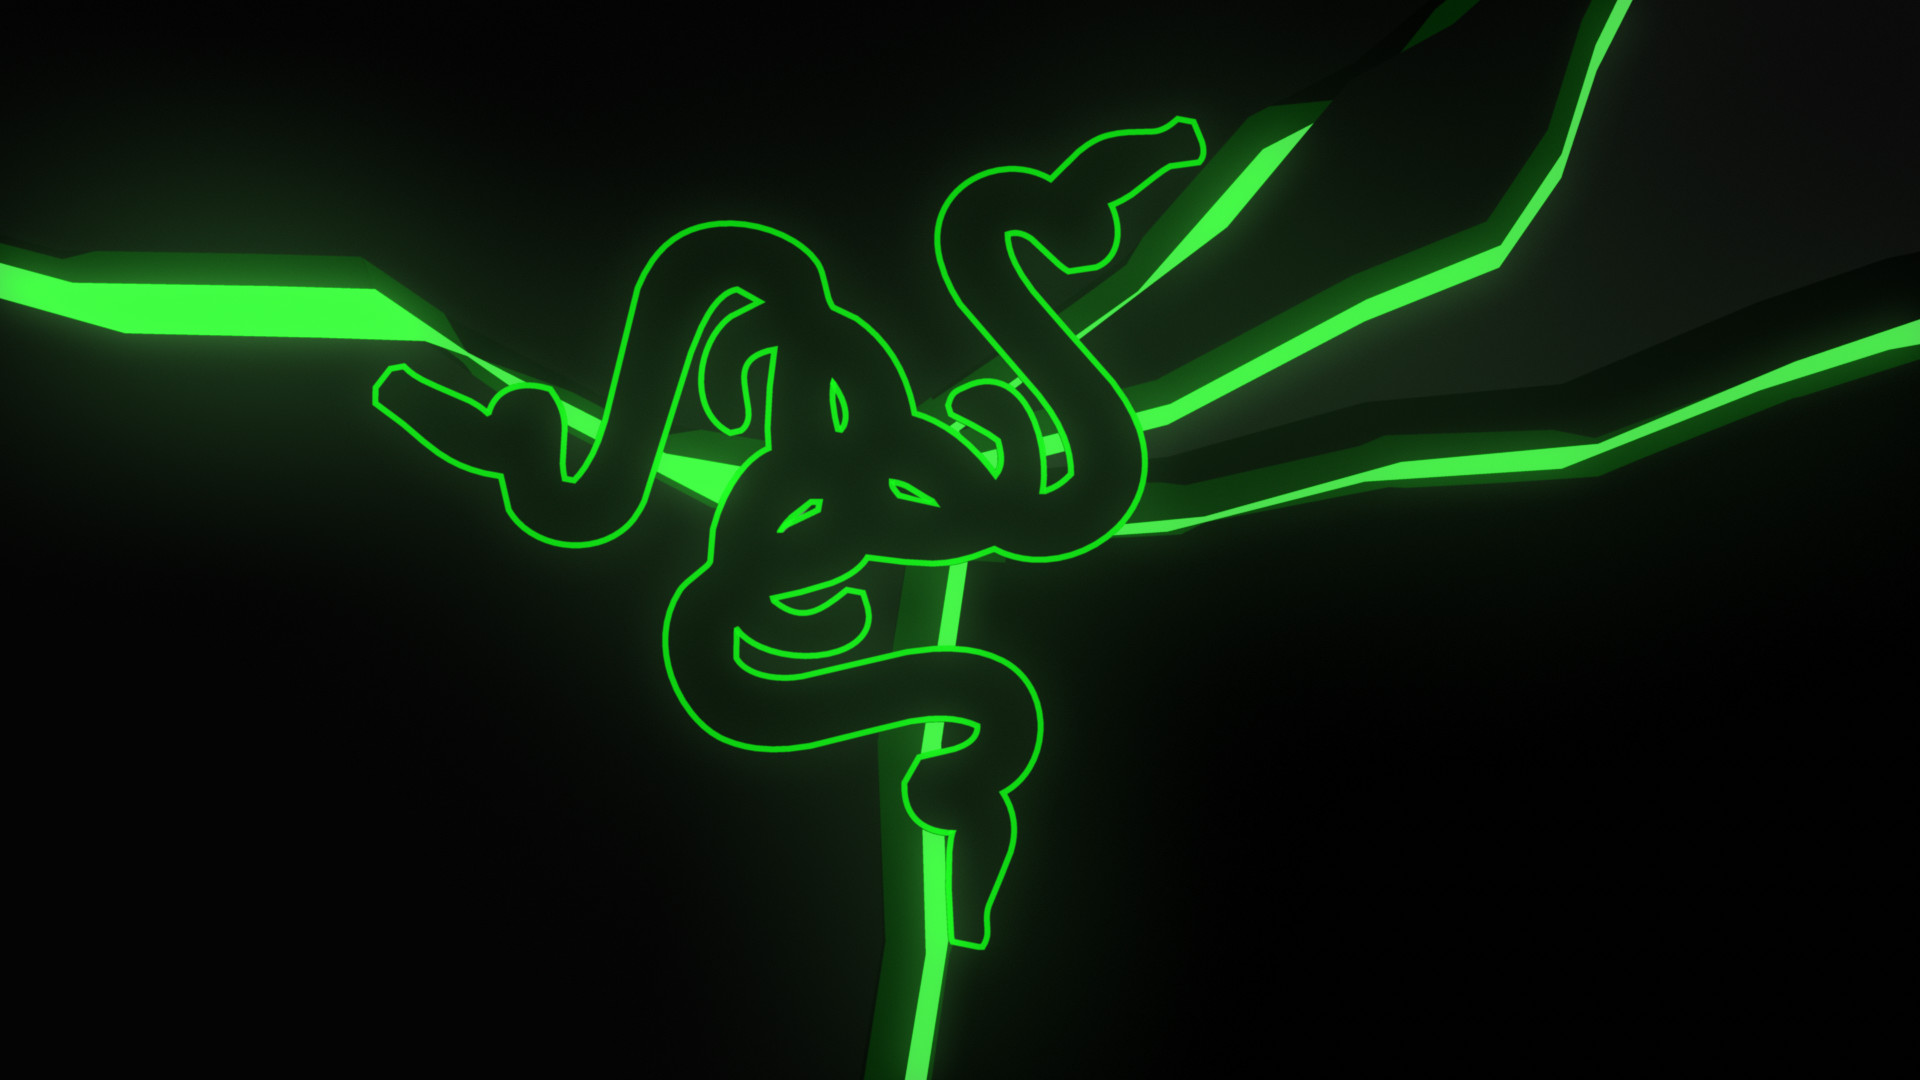 1920x1080 Razer Neon Green Wallpaper HD